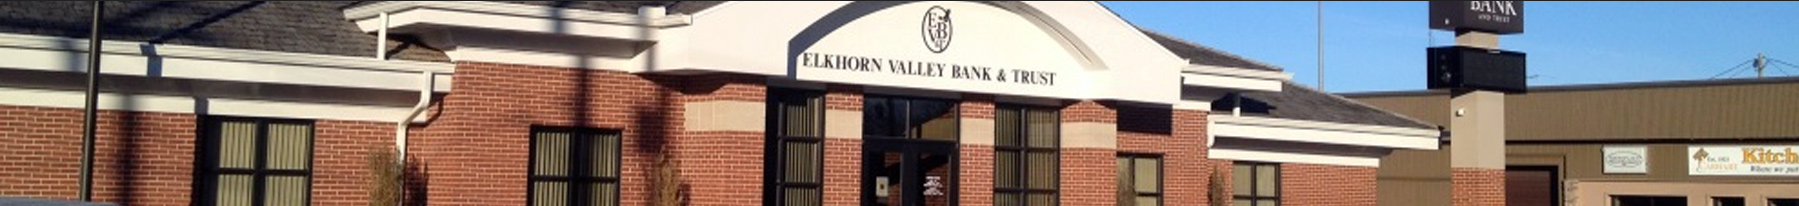 Info About Elkhorn Valley Bank & Trust